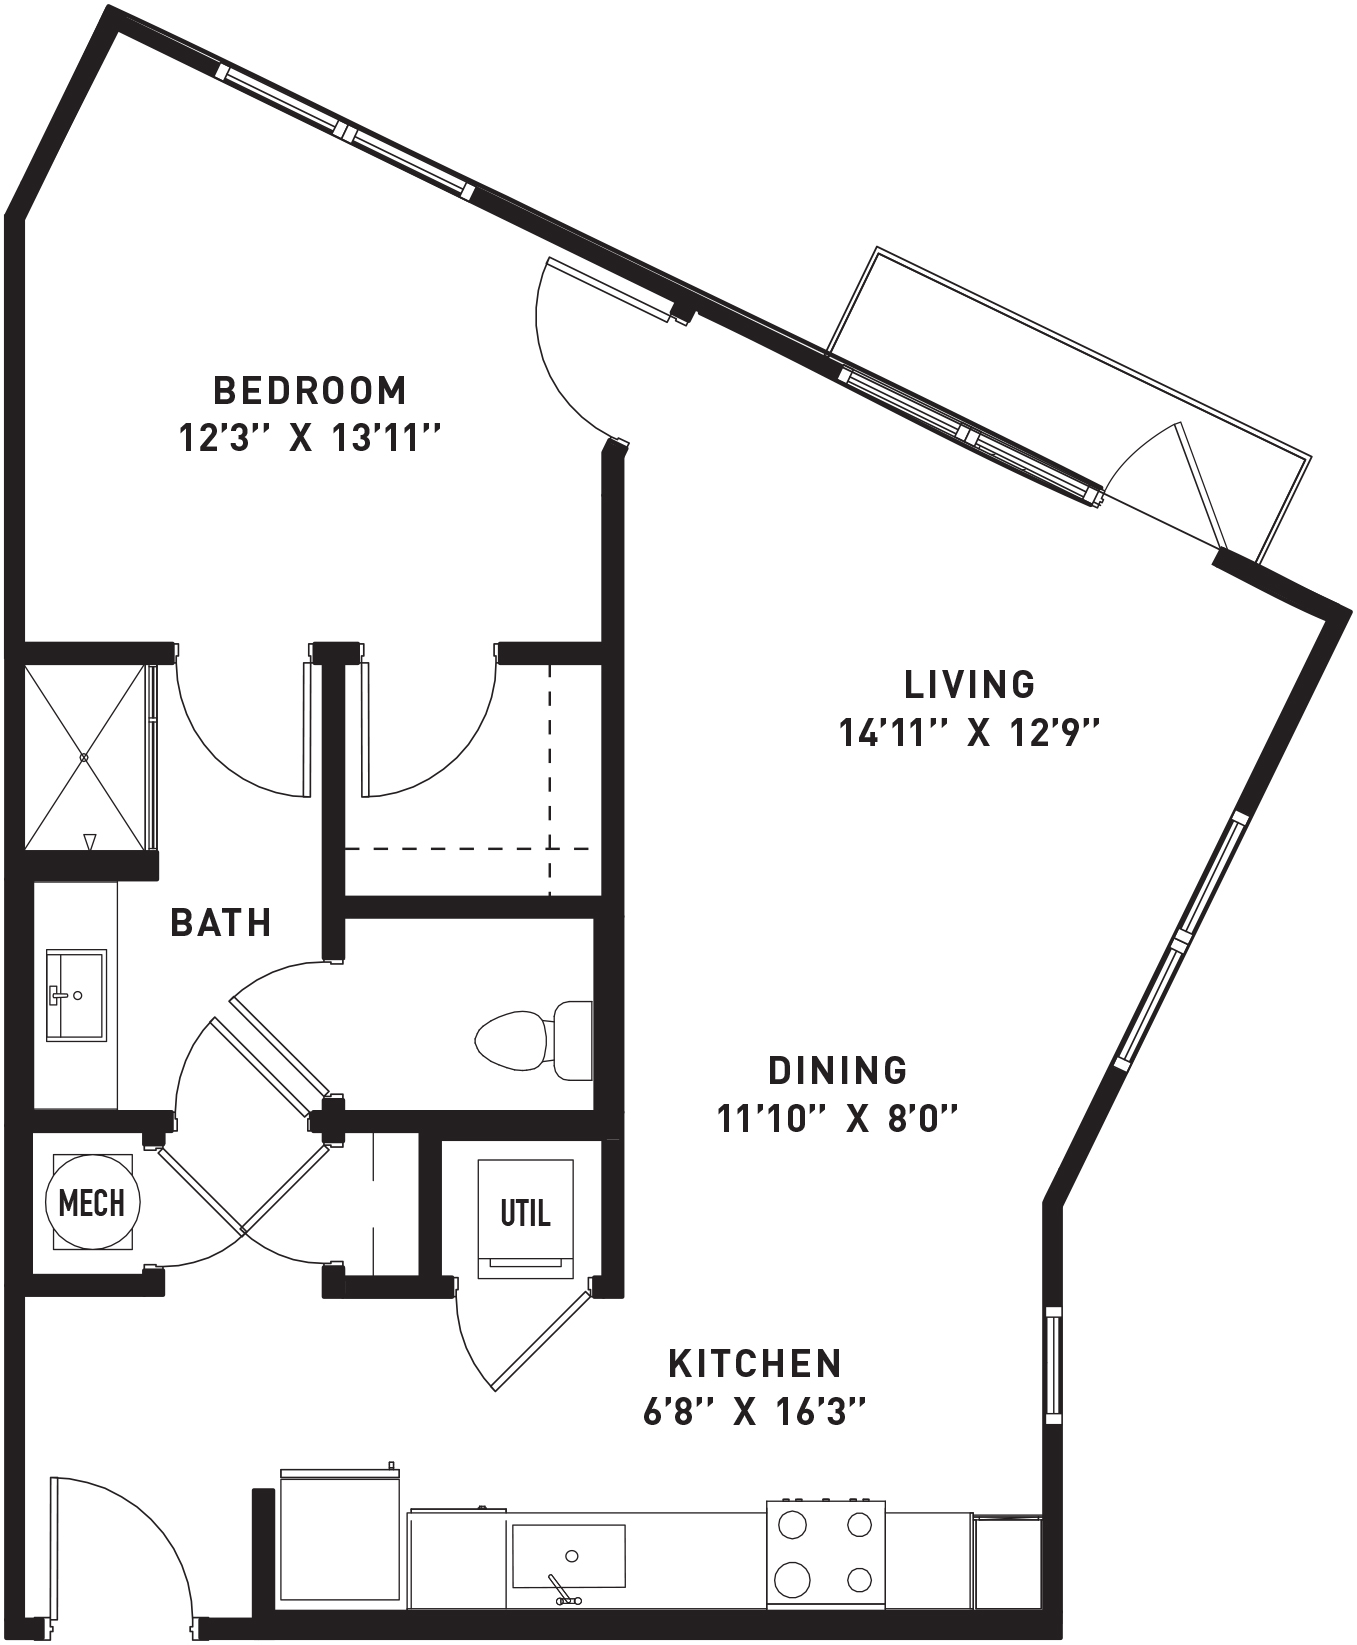 The Flats at Big Tex - Floorplan - A6